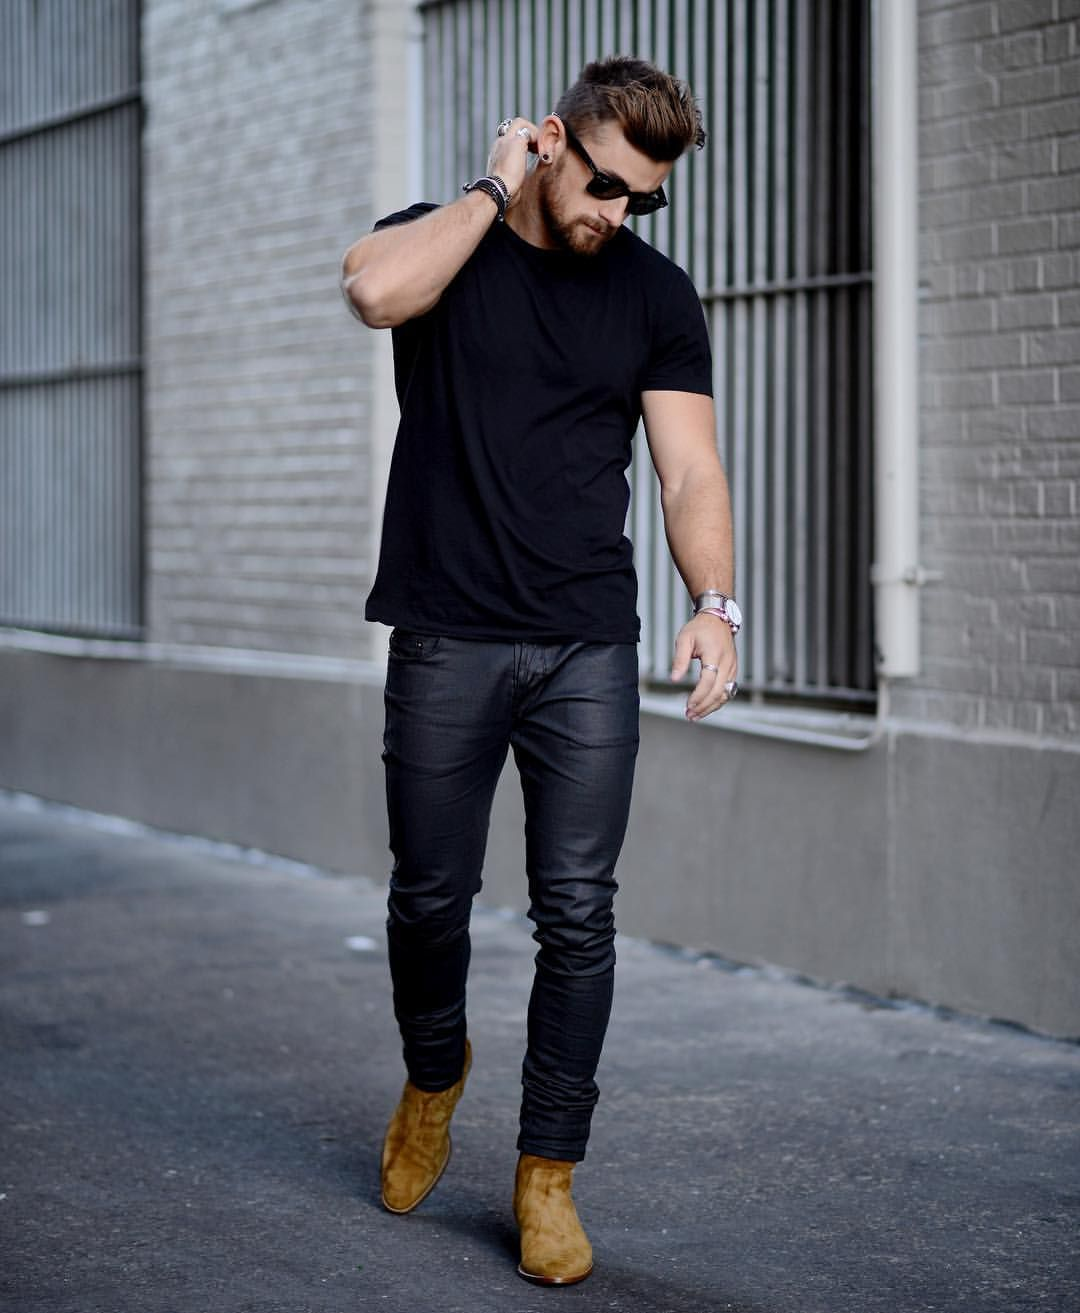 7 Crucial Style Tips for Short and Stocky Guys The Modest Man